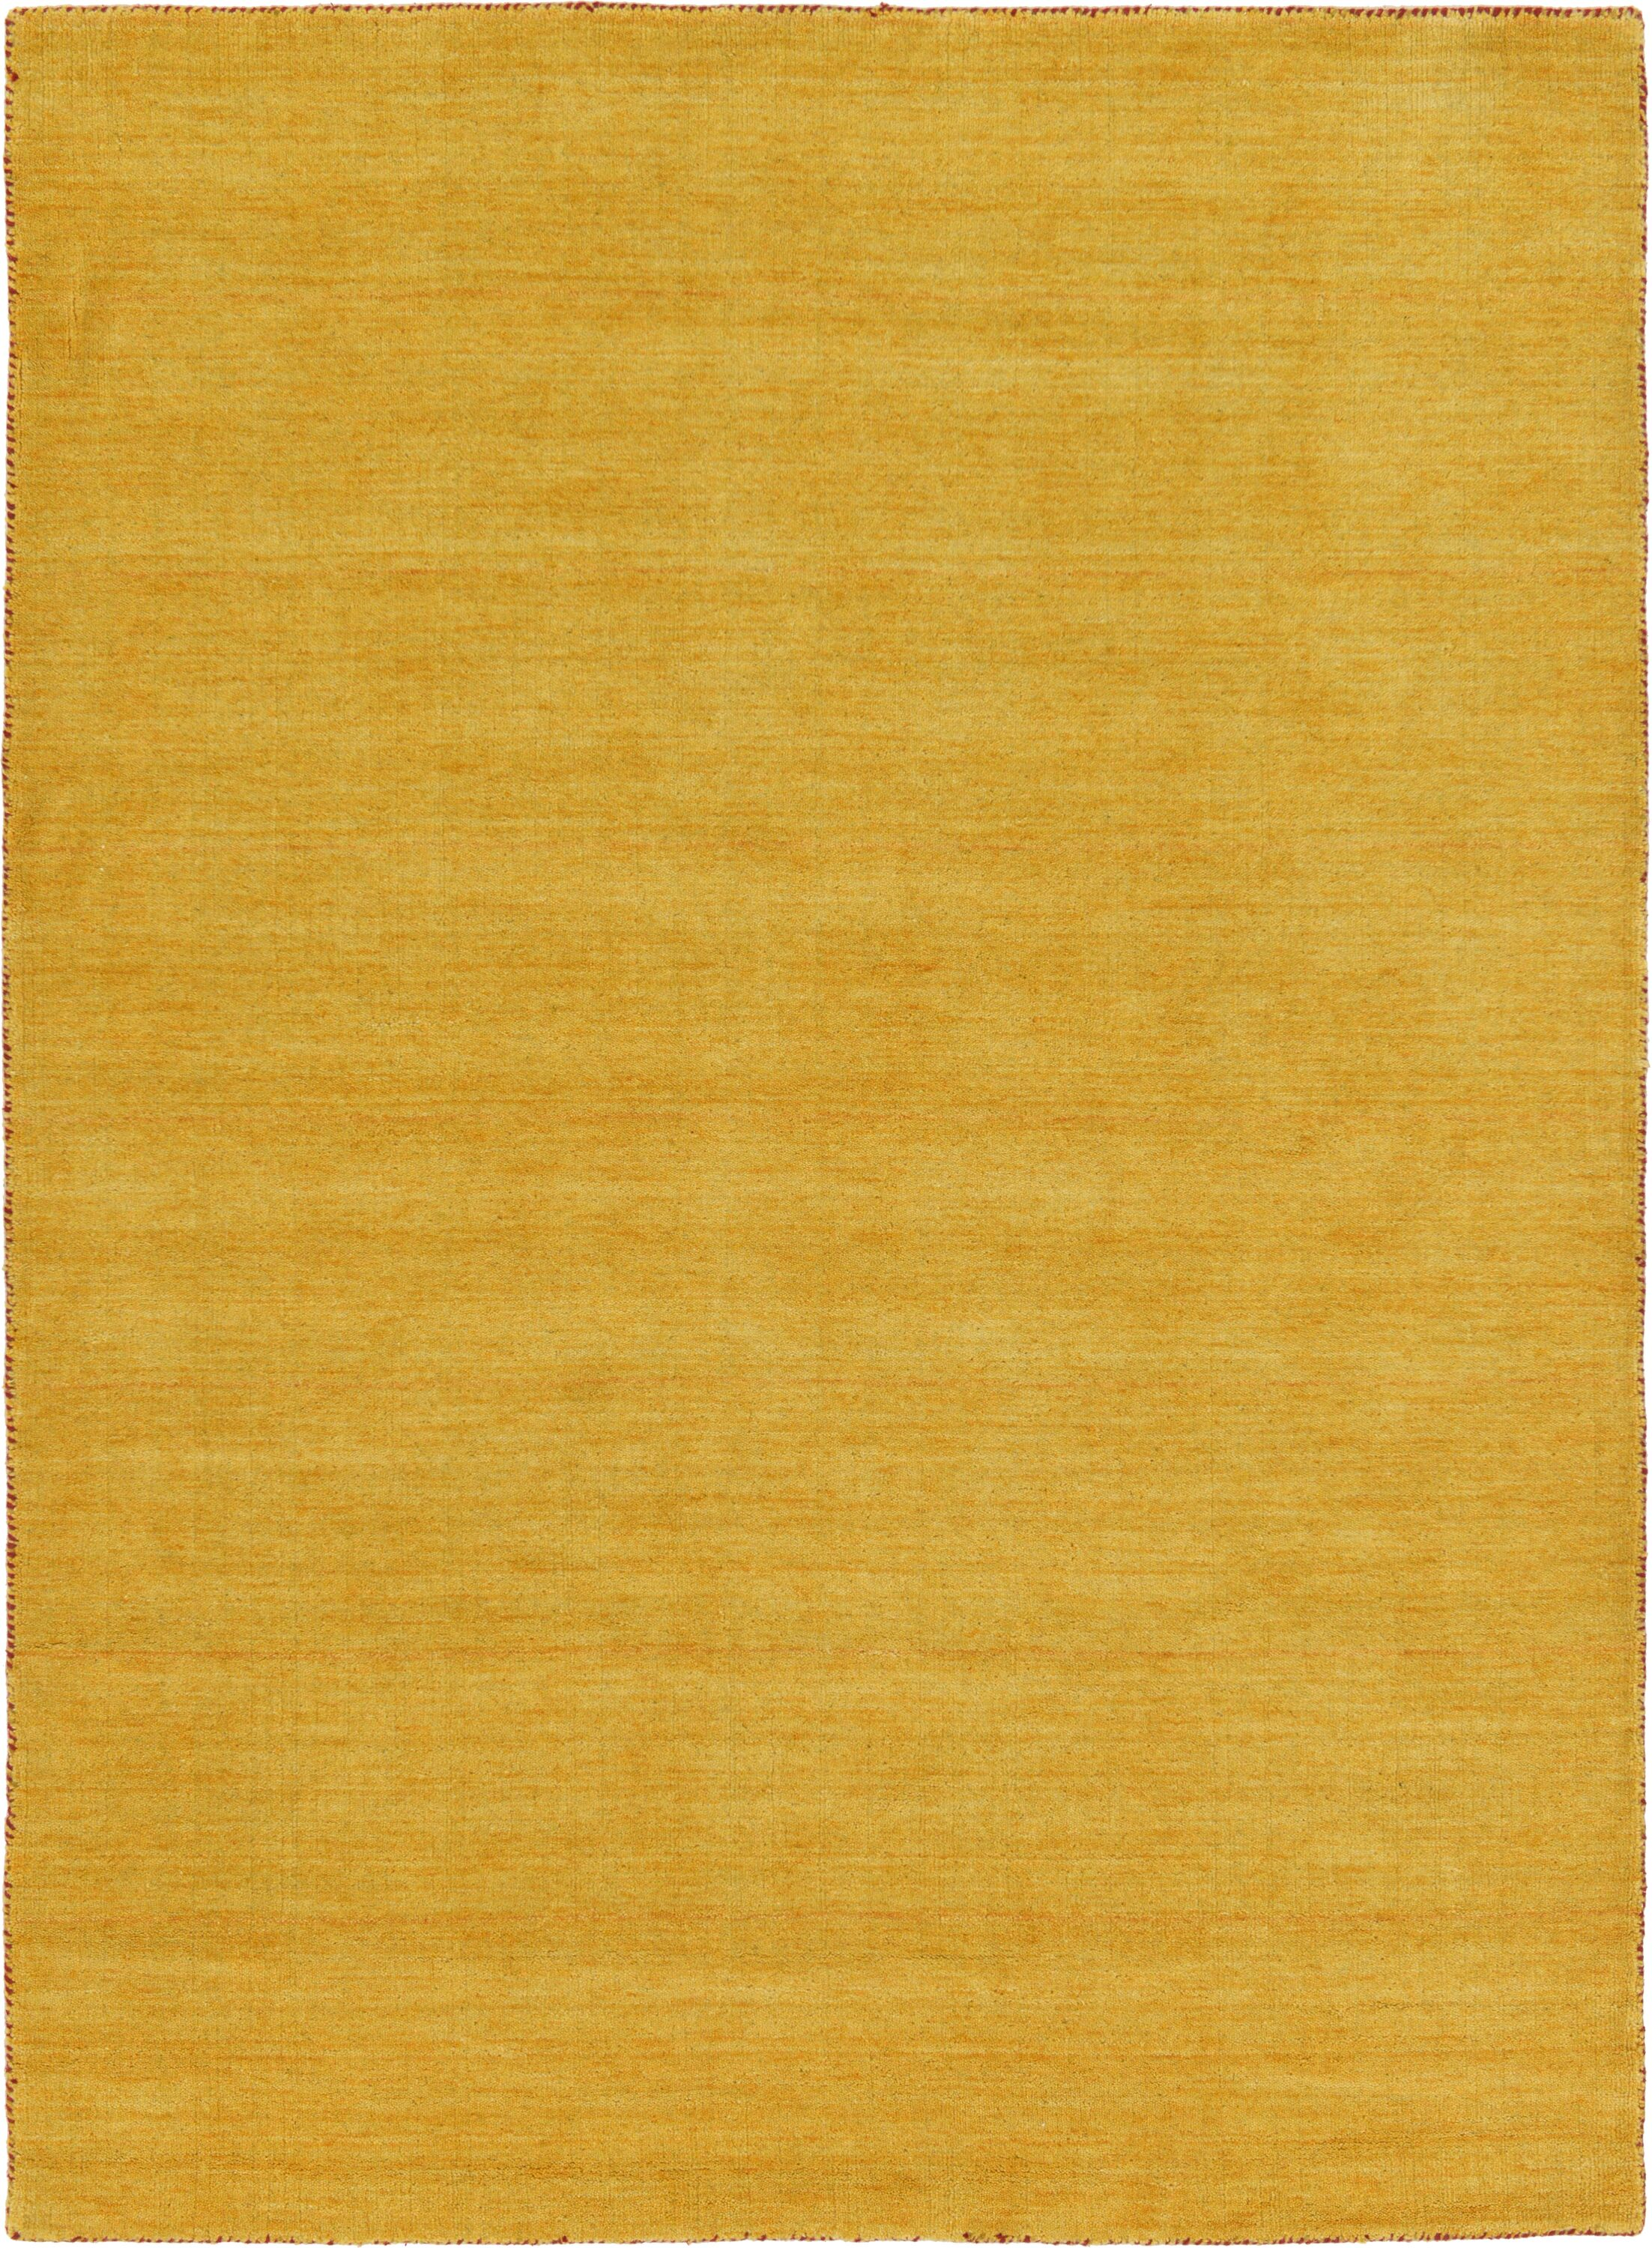 Taul Hand-Knotted Wool Gold Area Rug Rug Size: 5' 3 x 7' 7